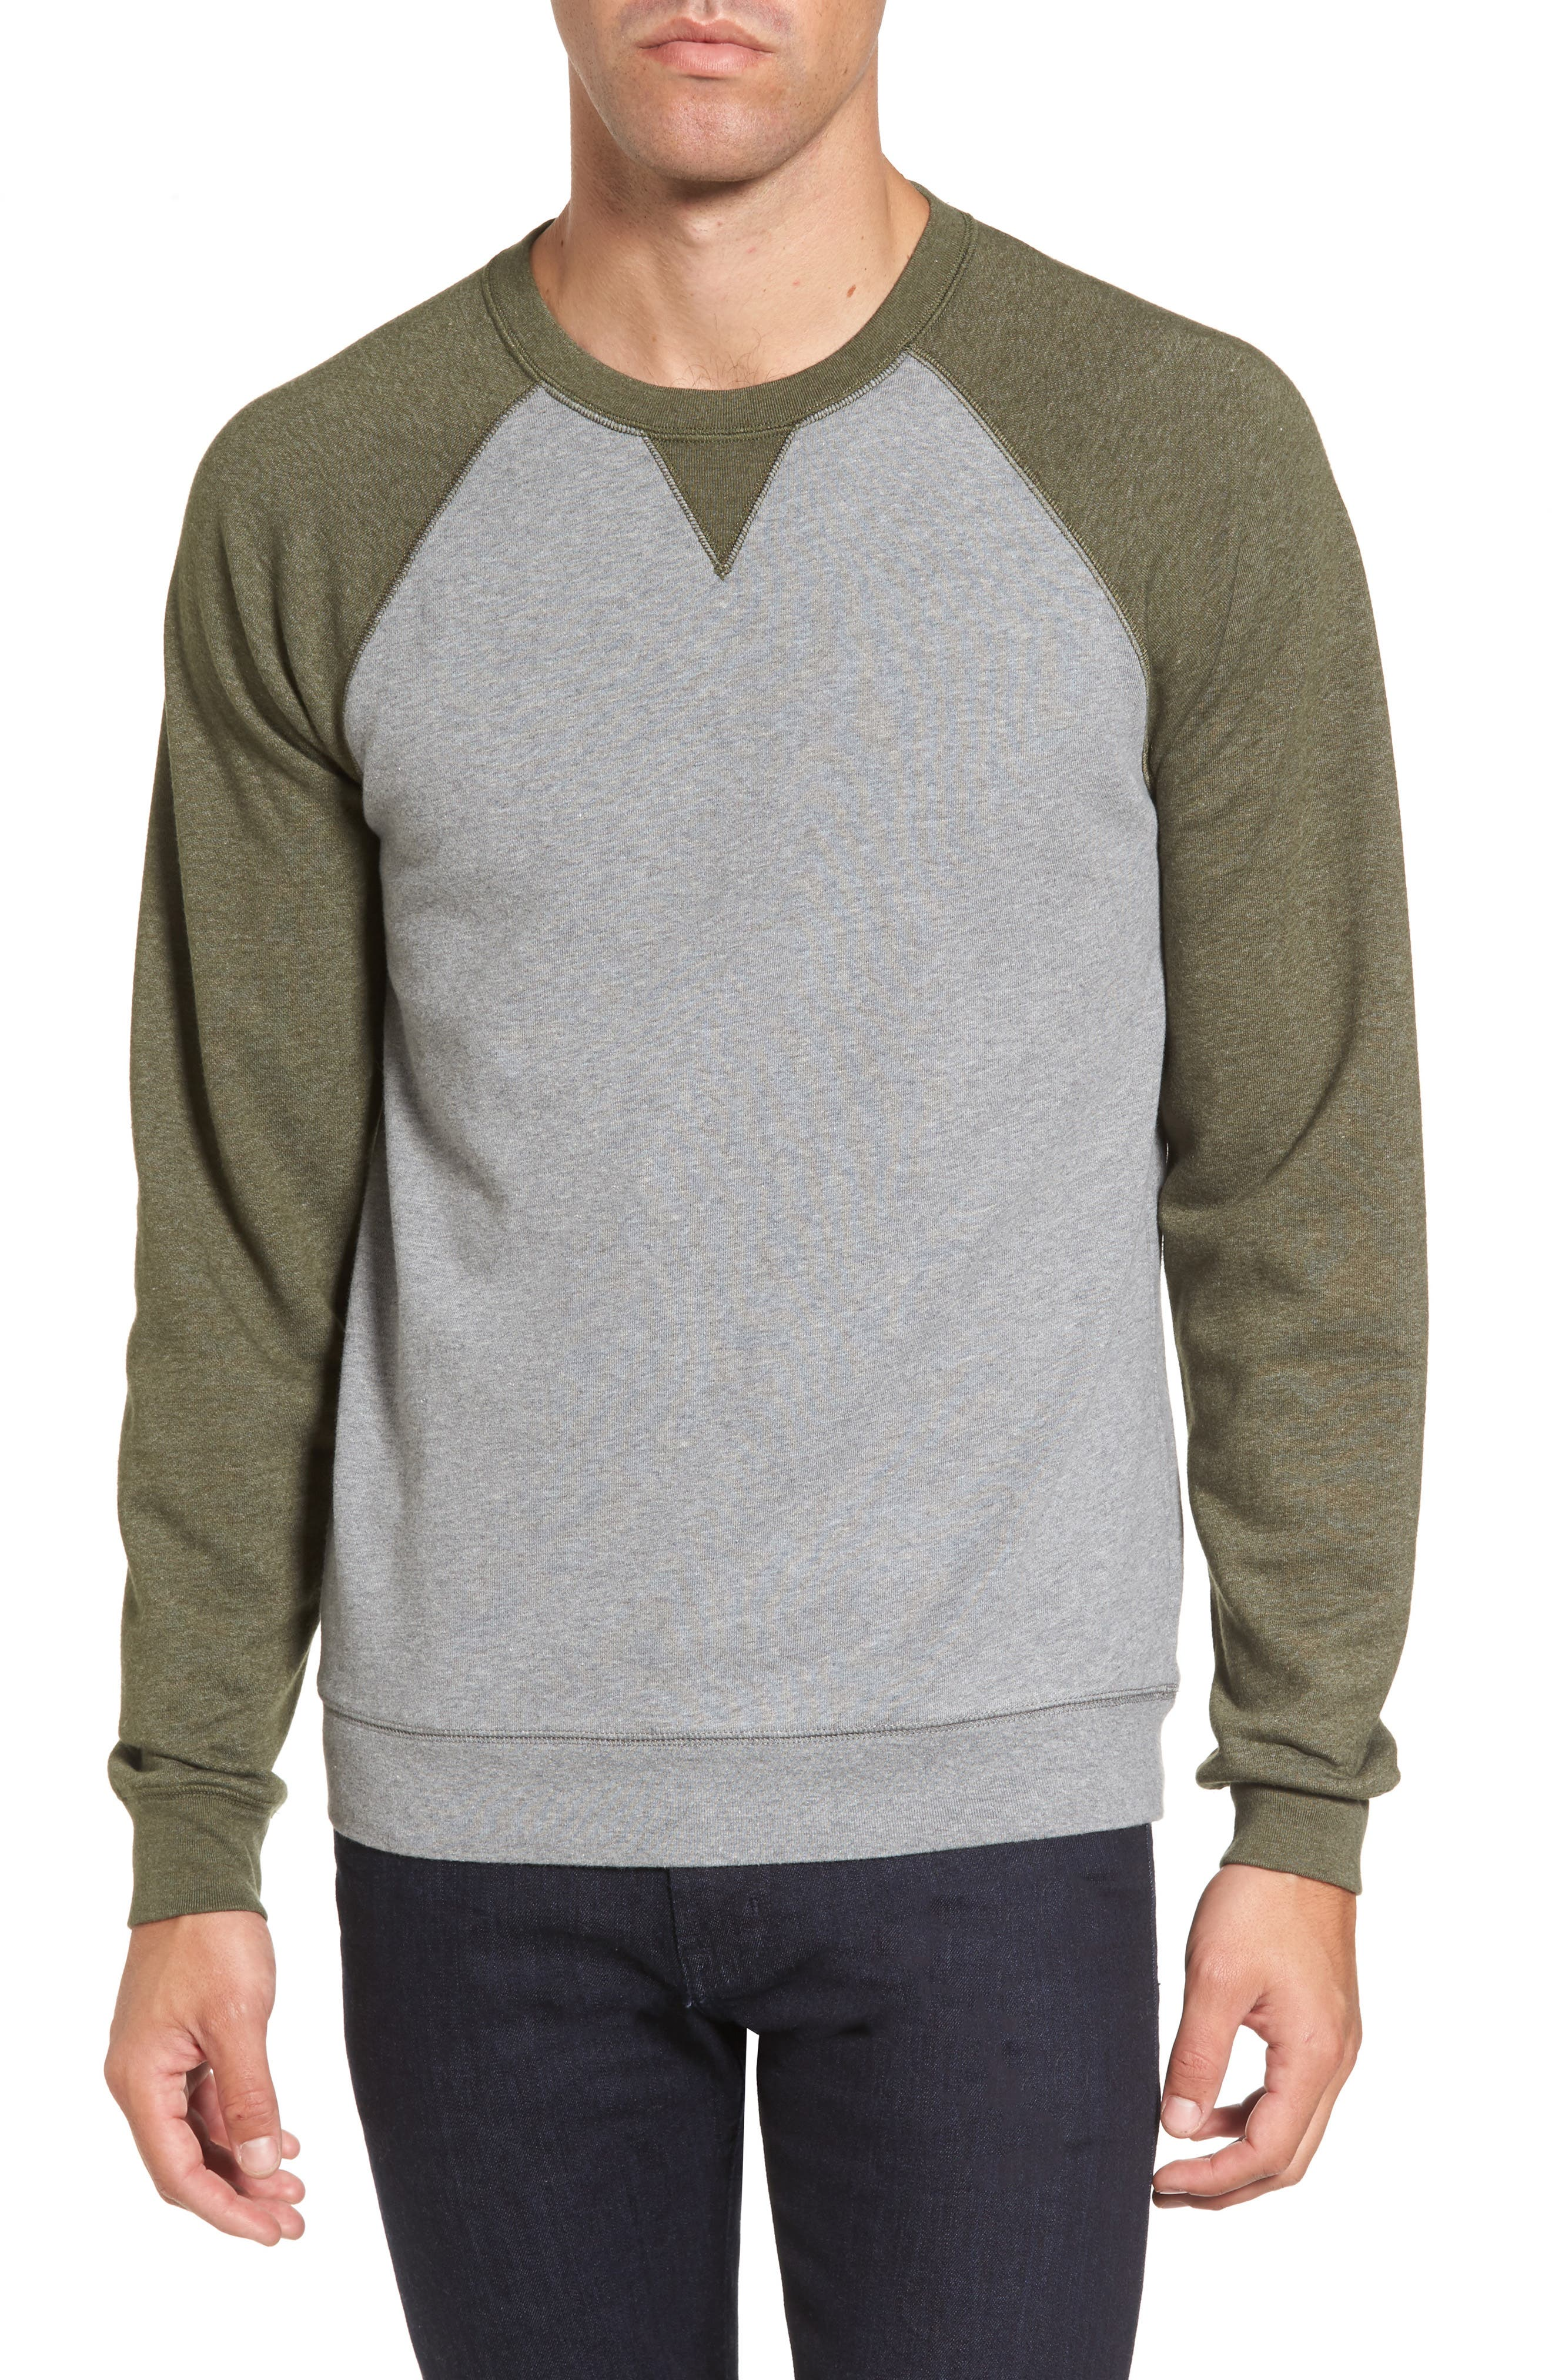 Colorblock French Terry Sweatshirt,                         Main,                         color, Med Grey Army Heather